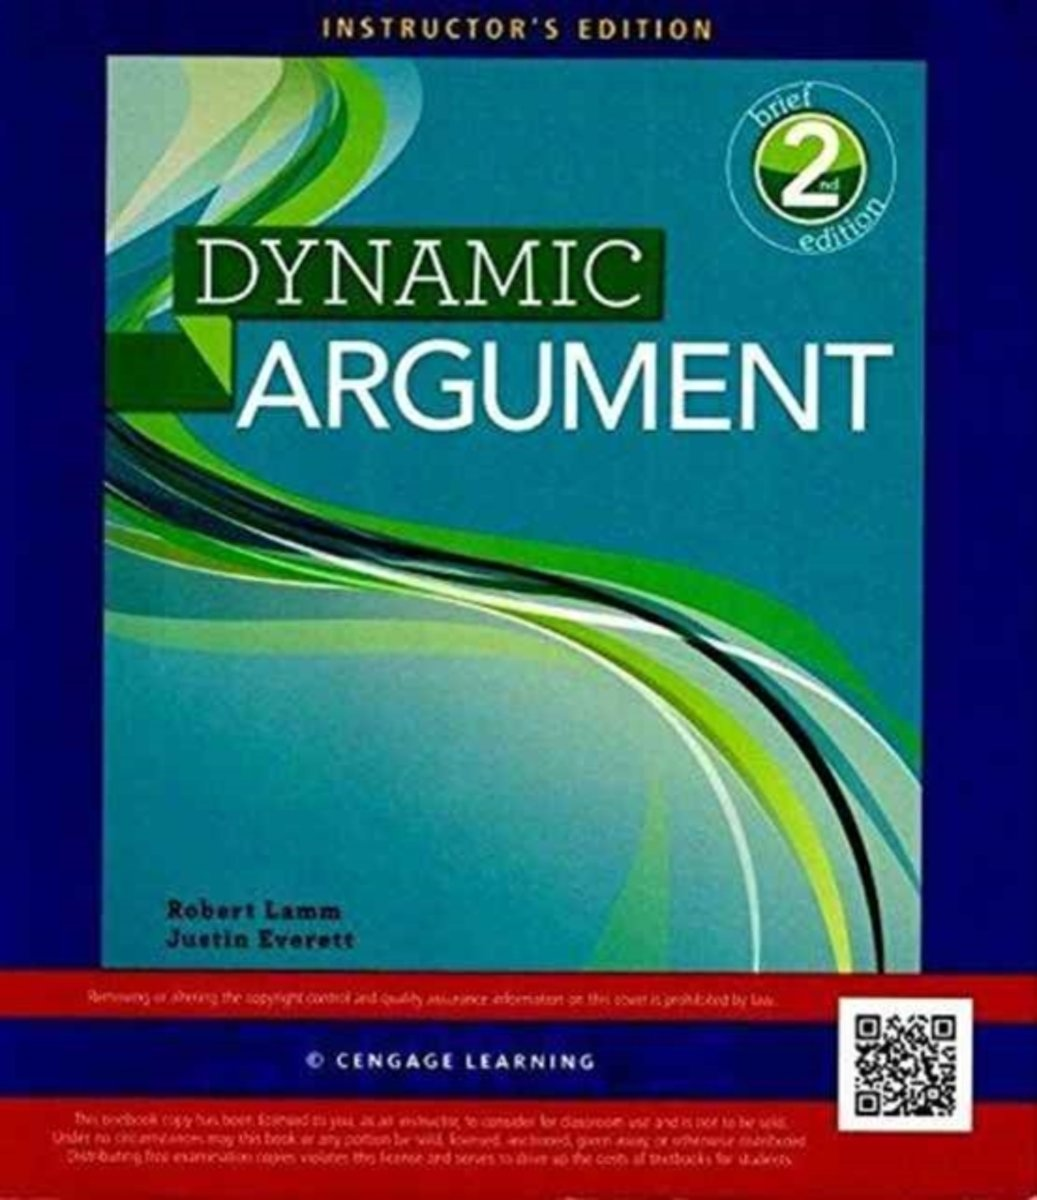 Instructor's Edition for Lamm/Everett's Dynamic Argument, Brief, 2nd